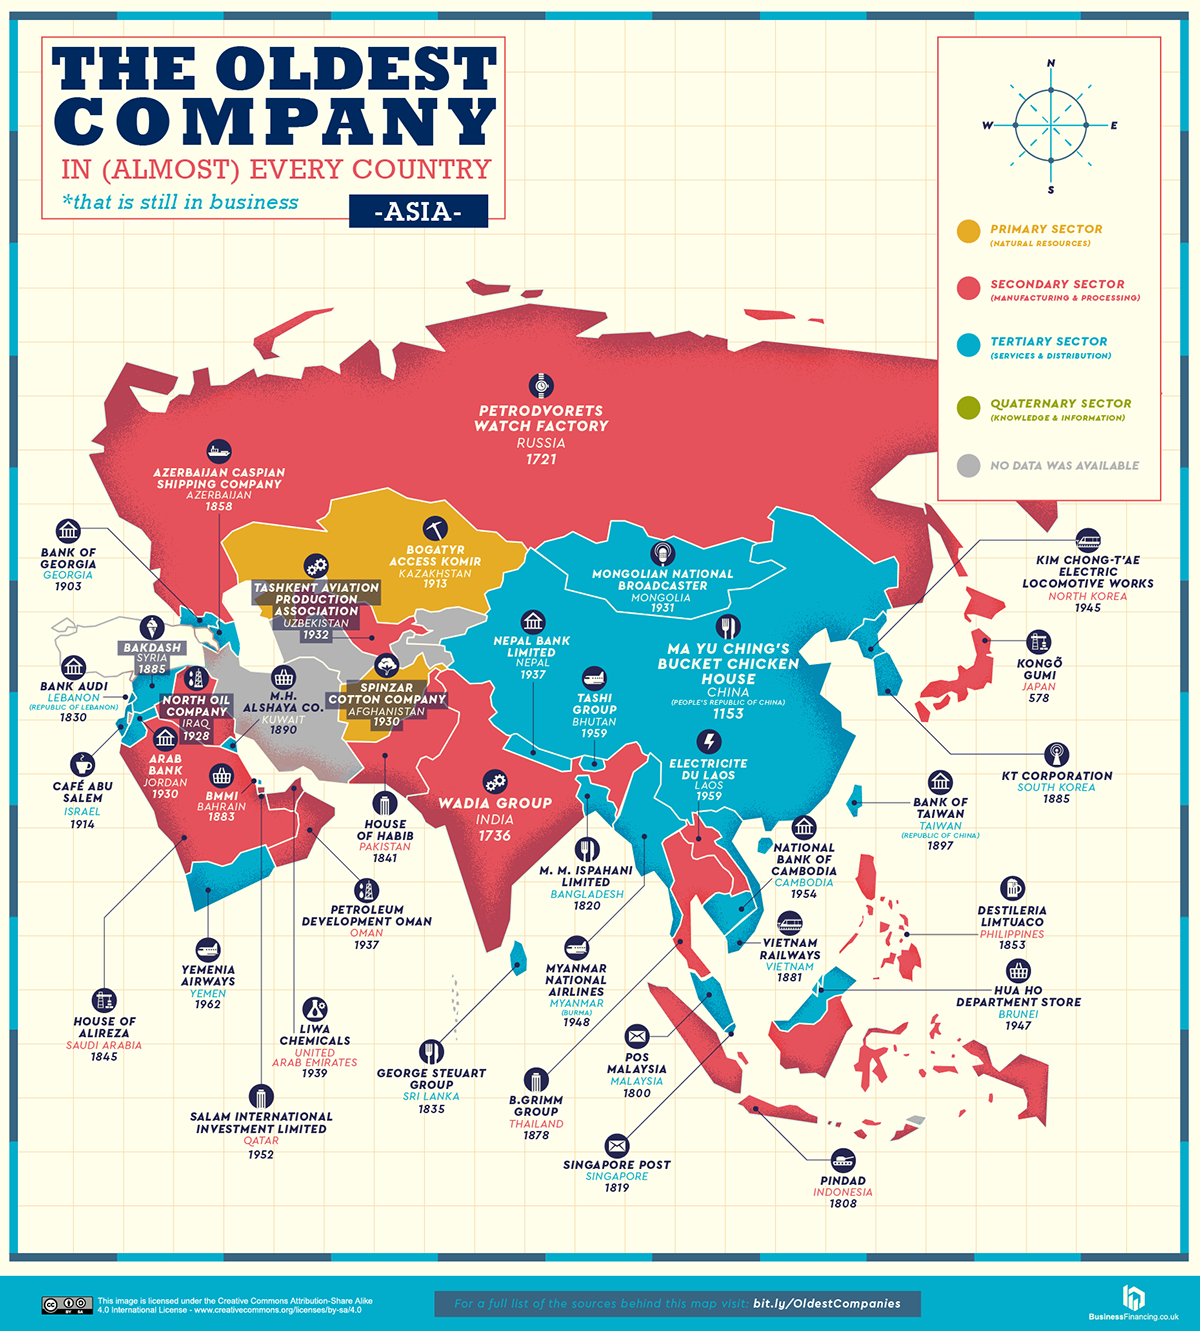 The Oldest Company in Asia